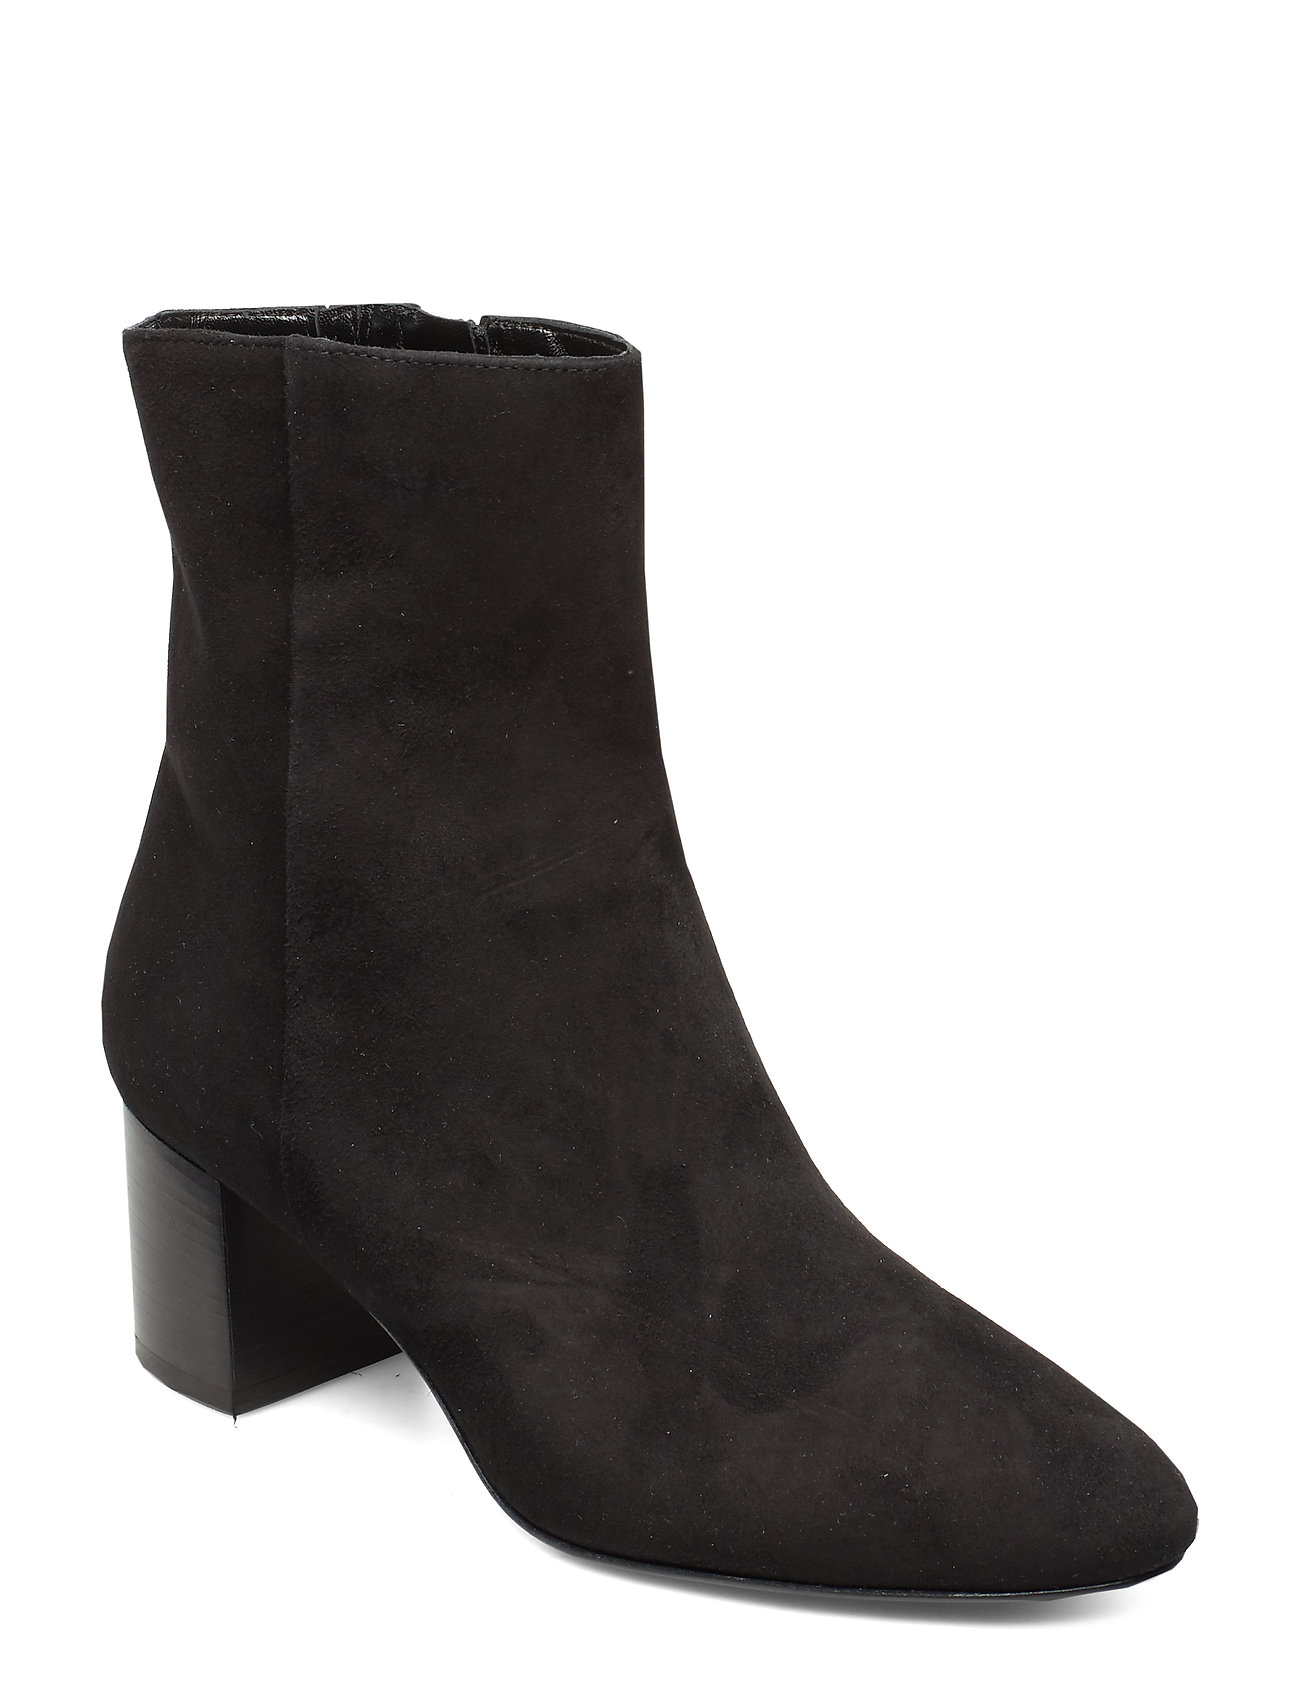 Image of Plan Low Rounded Bootie Shoes Boots Ankle Boots Ankle Boot - Heel Sort Apair (3406234691)